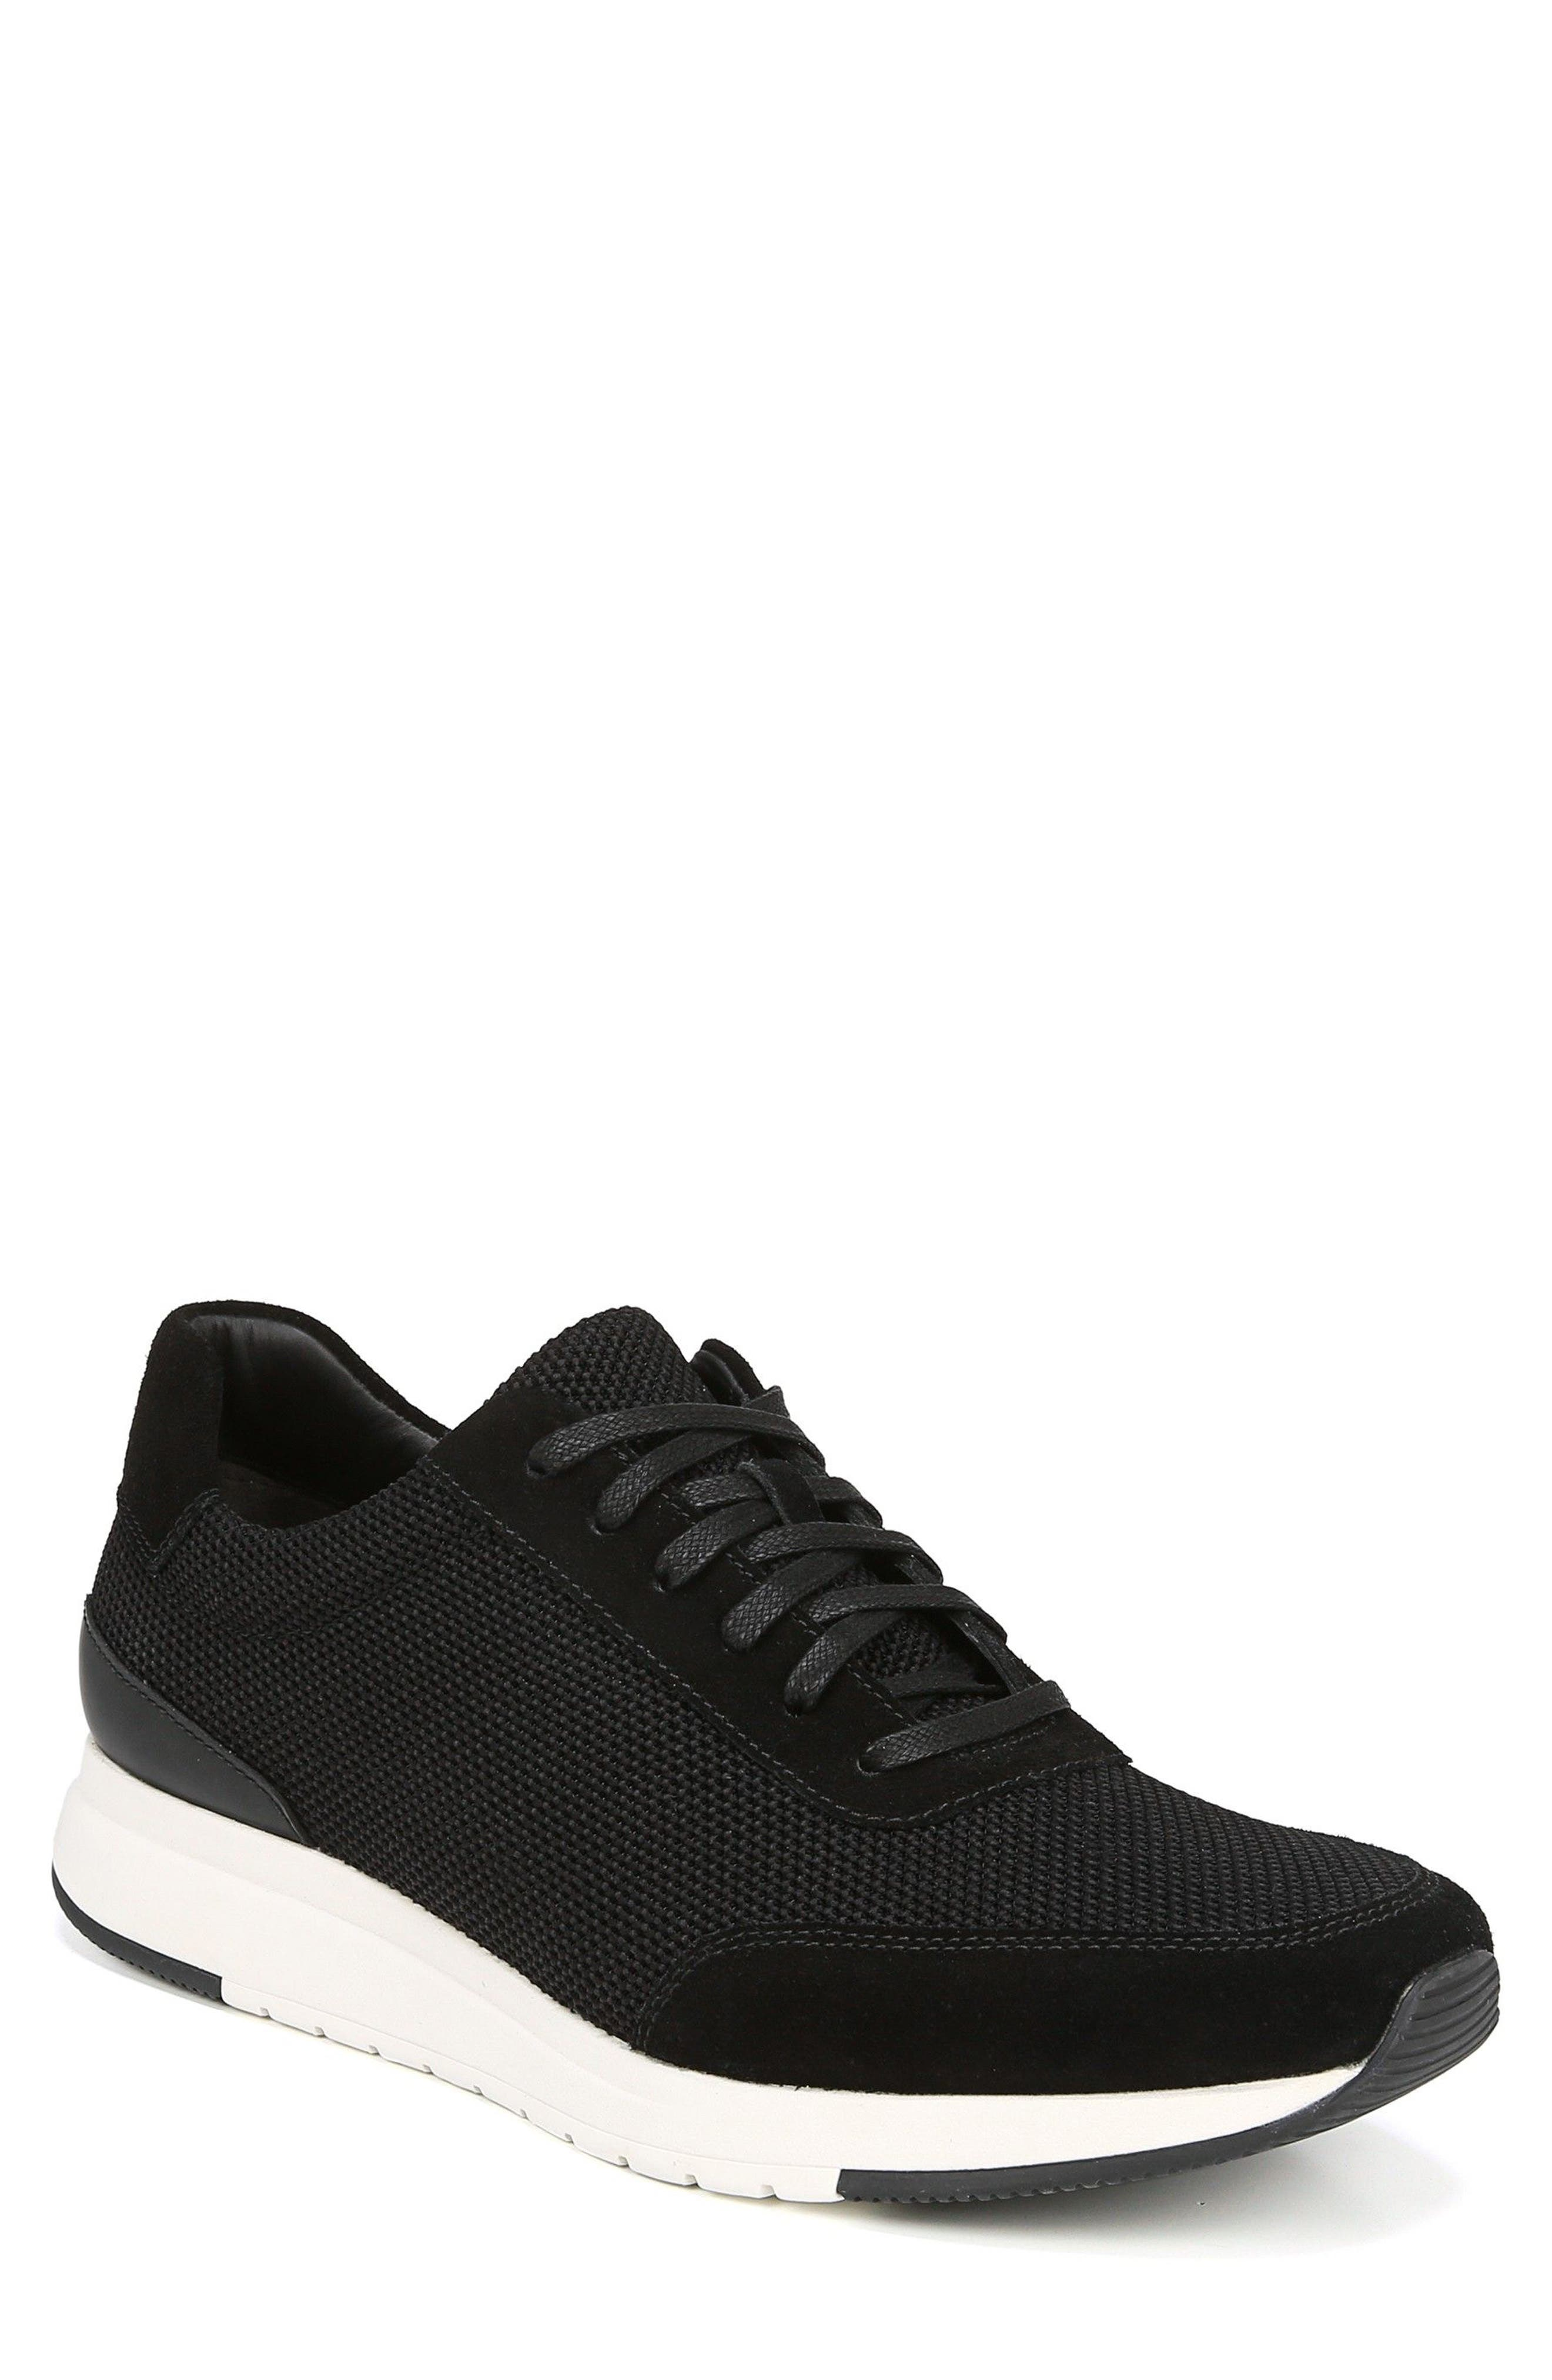 Payton Mesh Sneaker,                         Main,                         color, BLACK